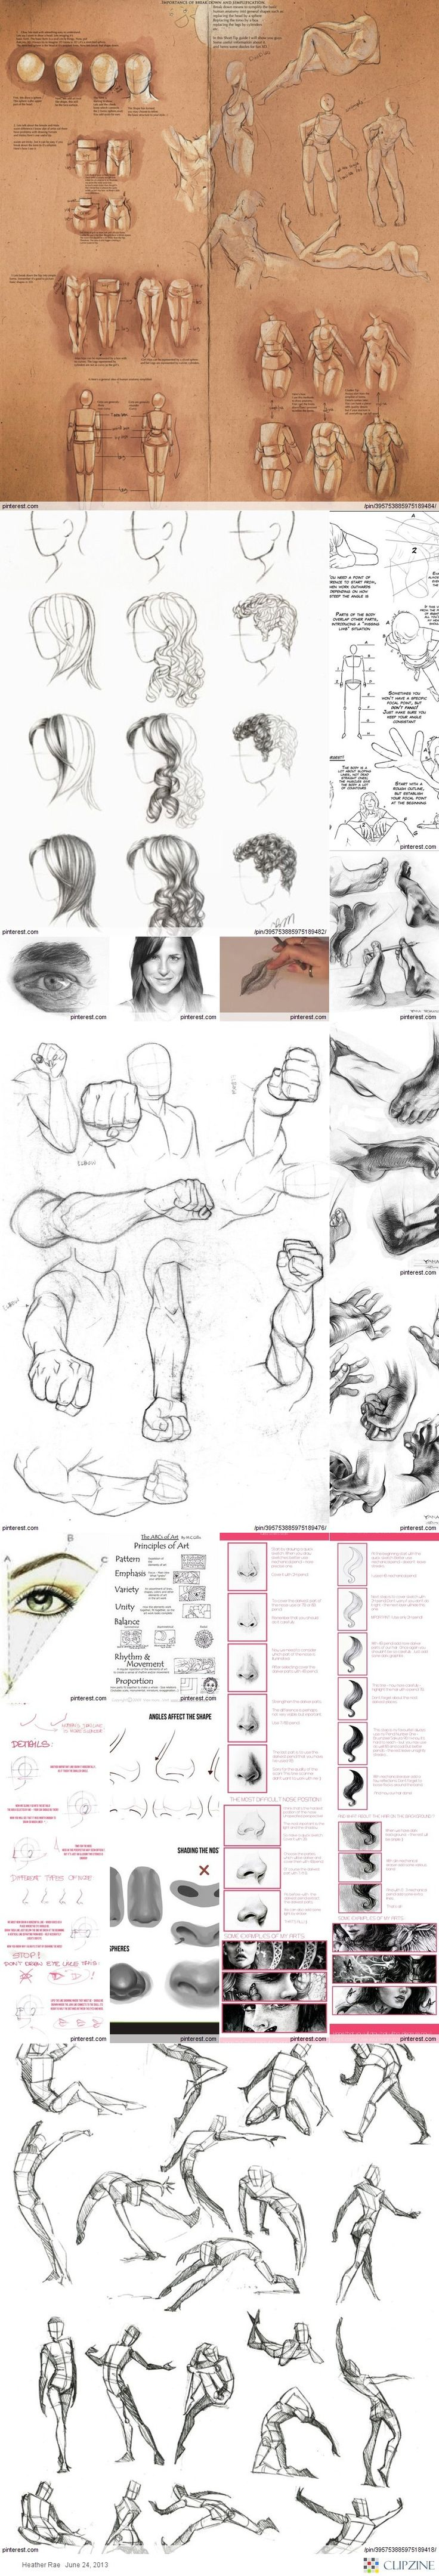 DIY Drawing Tutorials join us http://pinterest.com/koztar/ - I haven't drawn in such a long time...